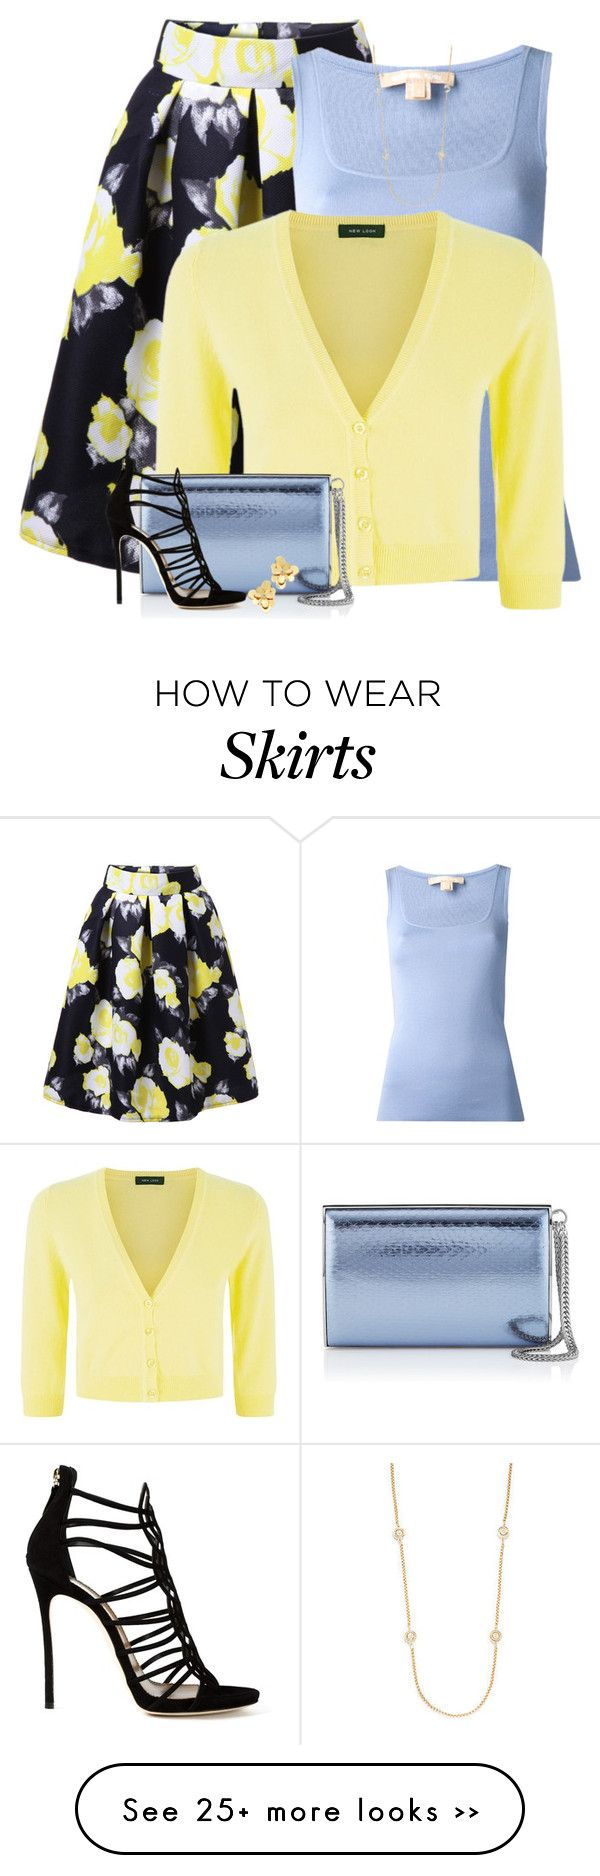 Look - How to yellow wear skirt polyvore video